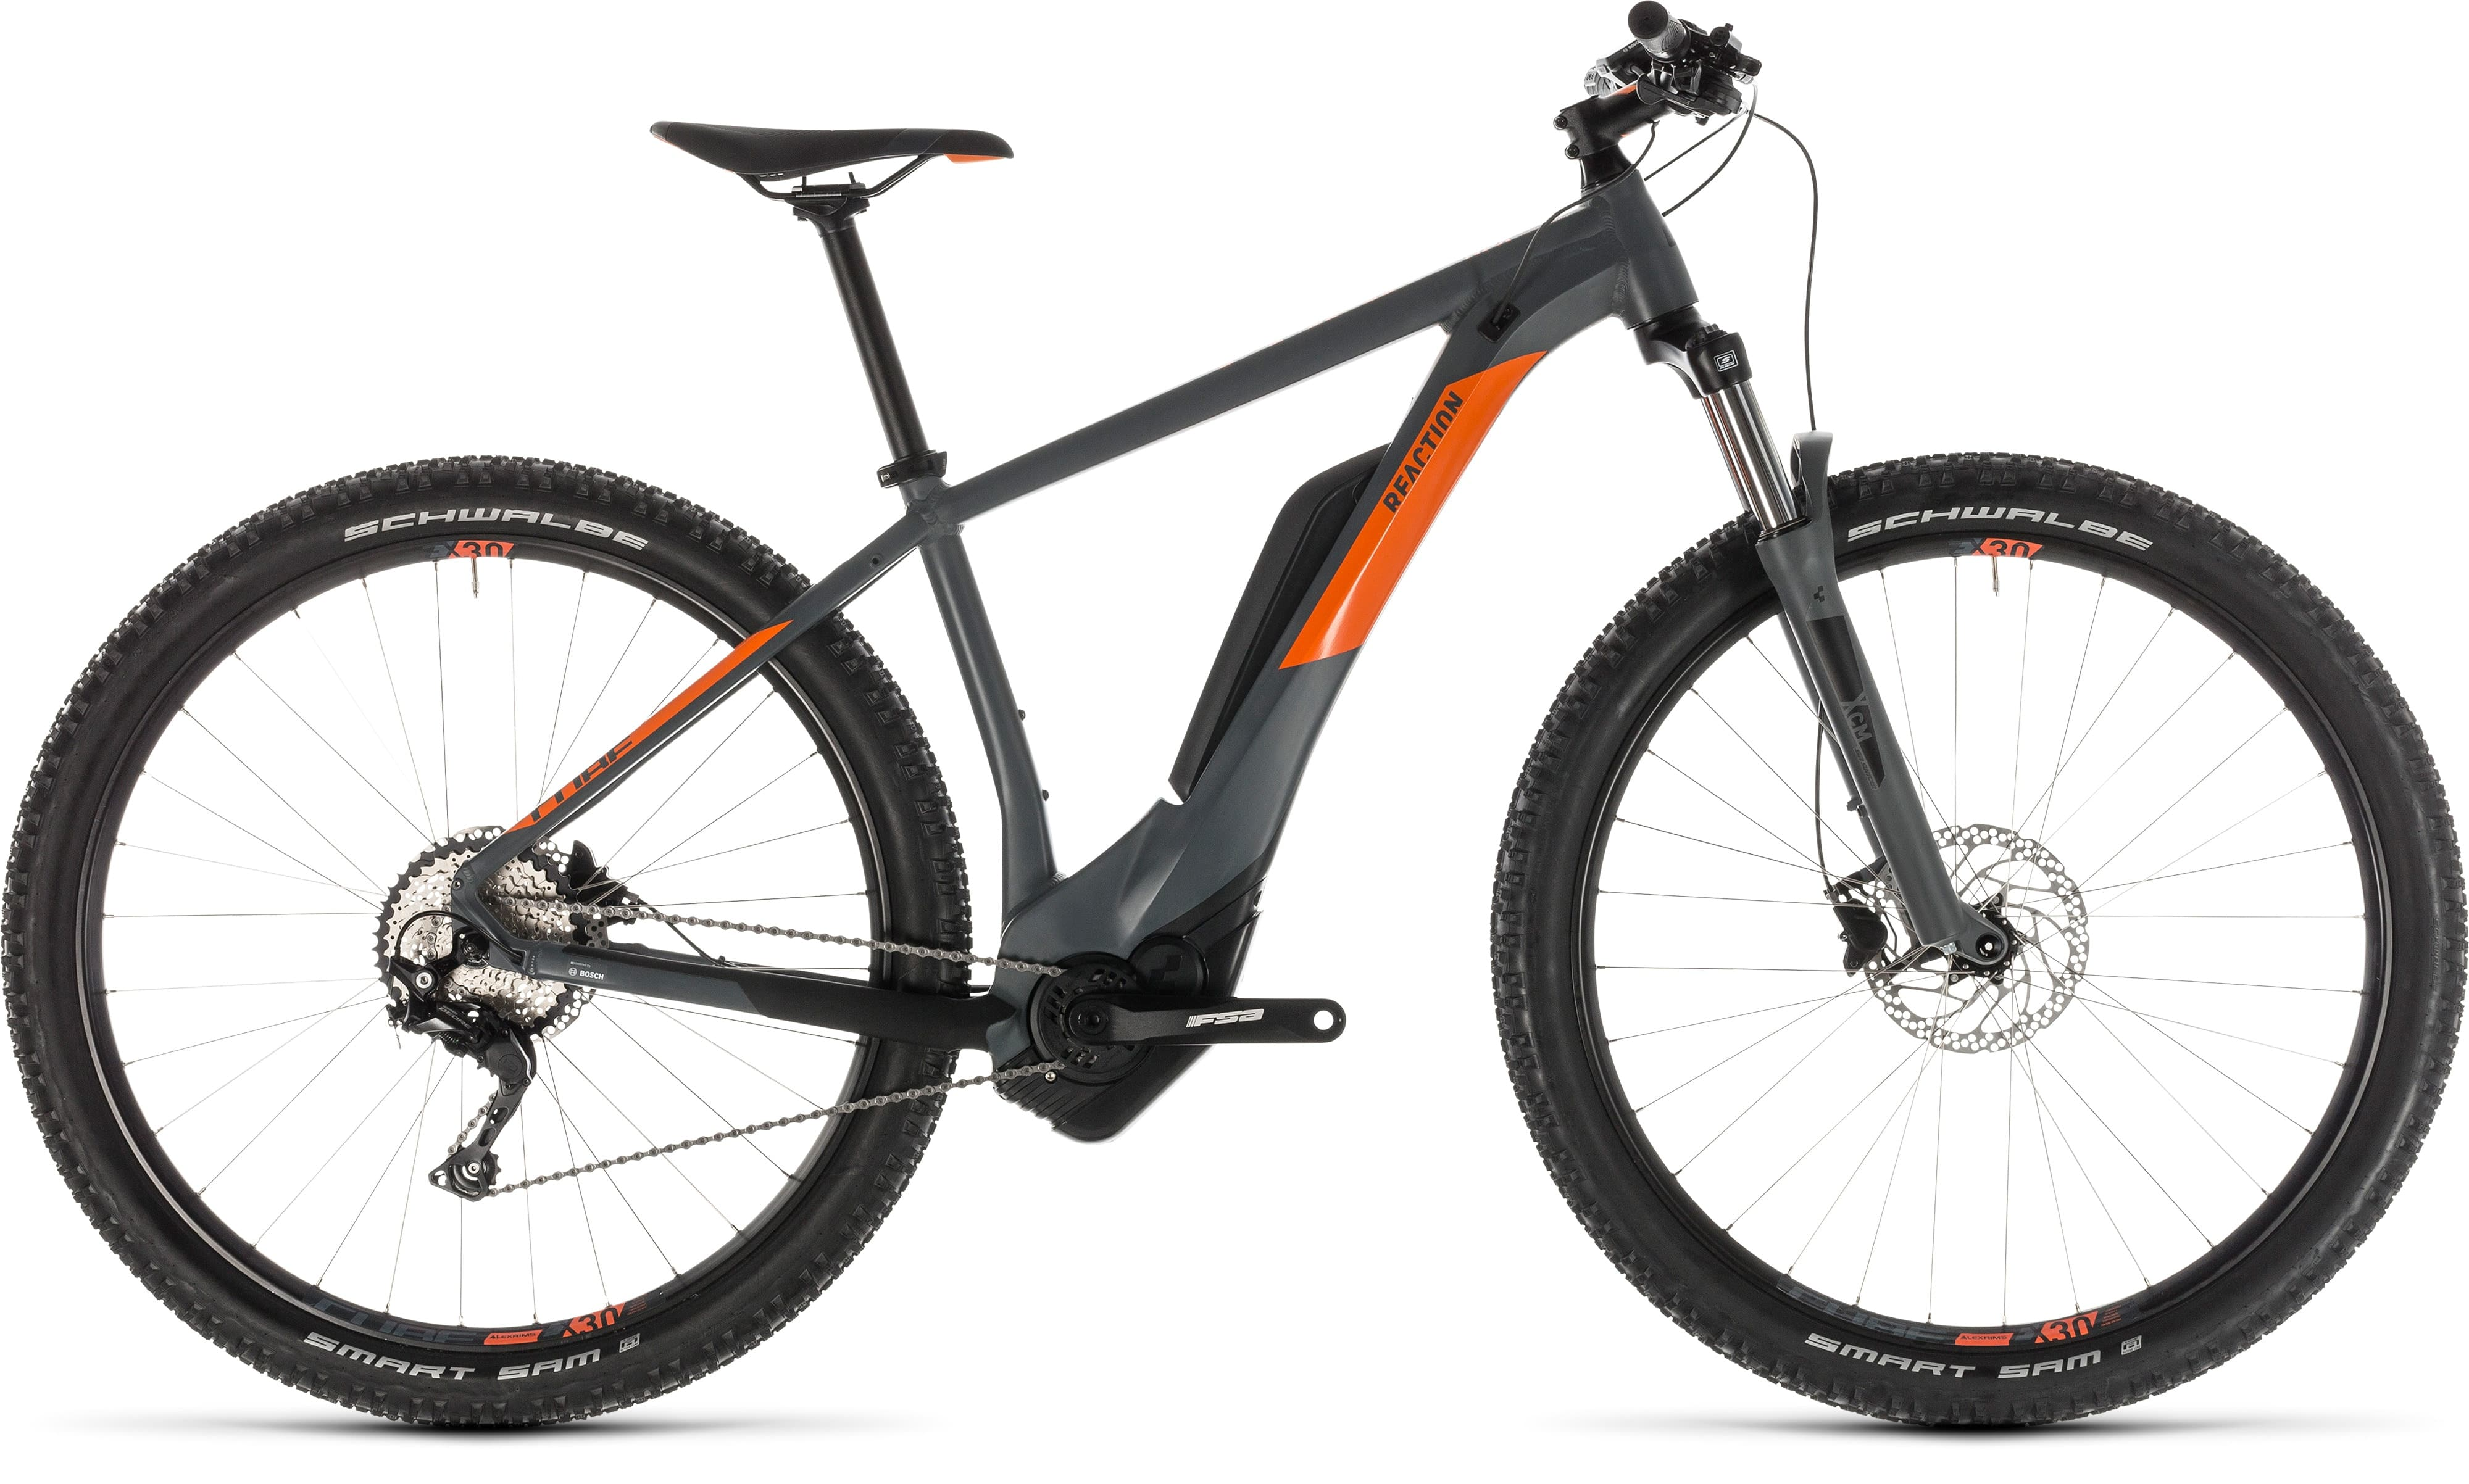 E-bike Hardtail Giant Dirt -E+ - Yamaha motor, 500wh